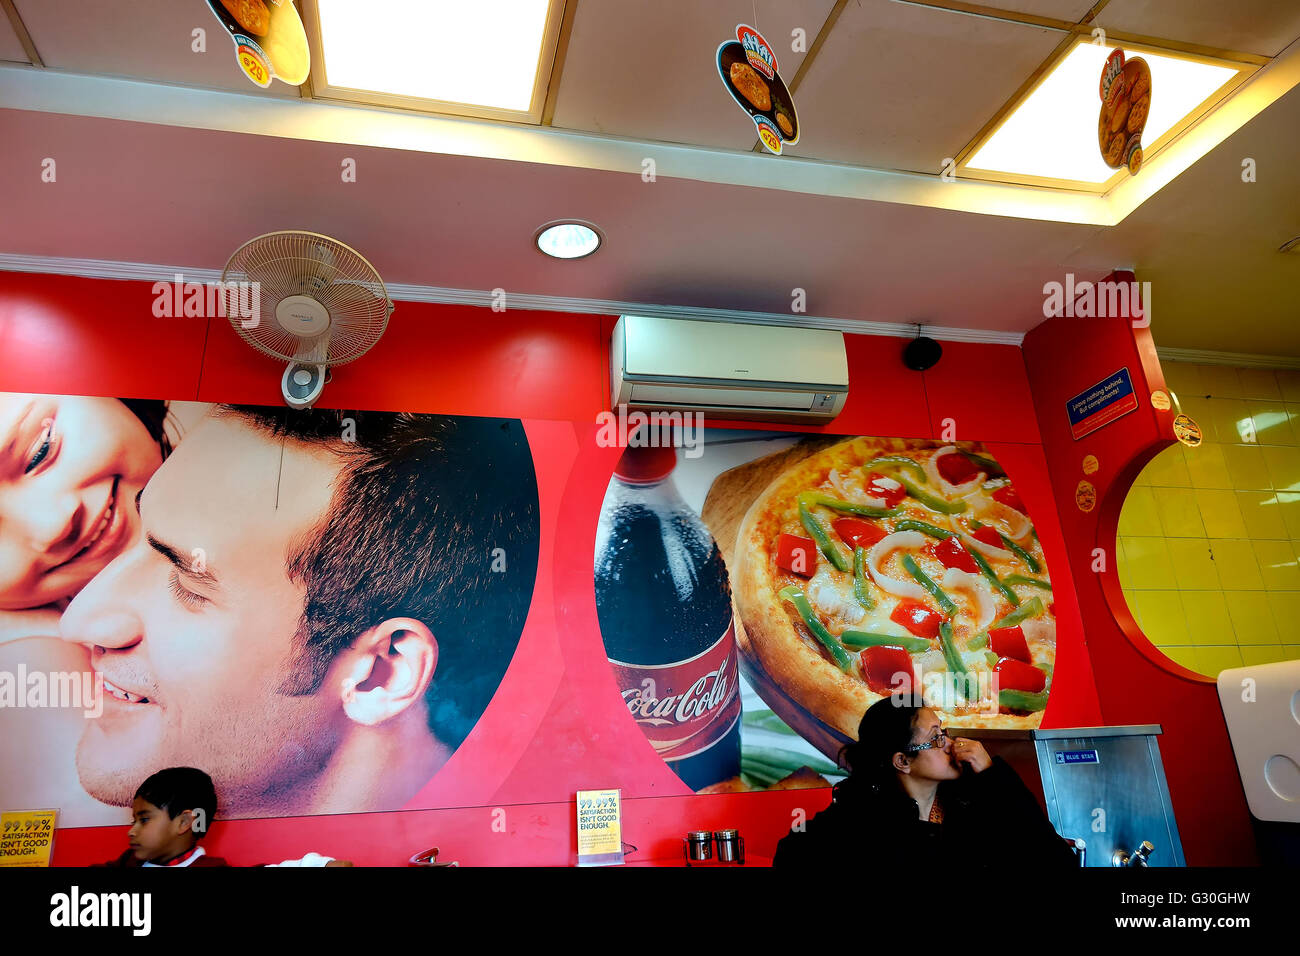 Dominos Pizza outlet in Himachal Pradesh, India - Stock Image